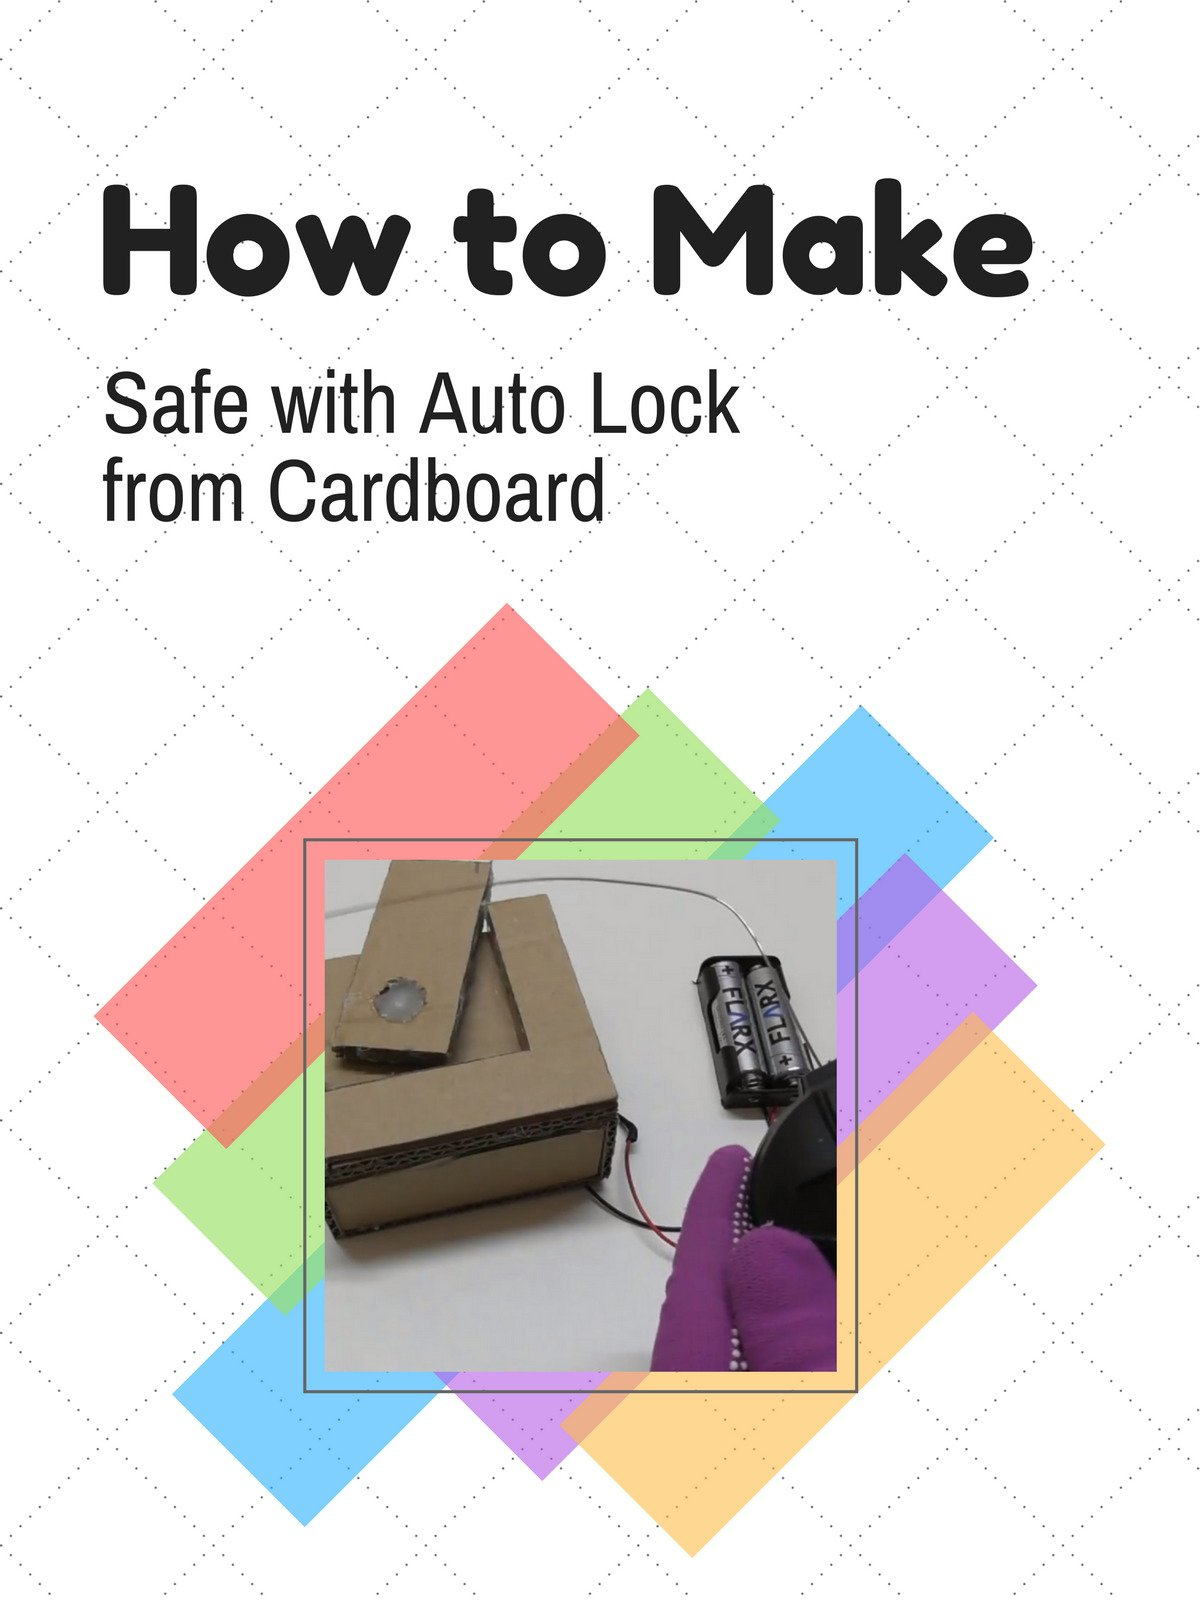 How to Make Safe with Auto Lock from Cardboard